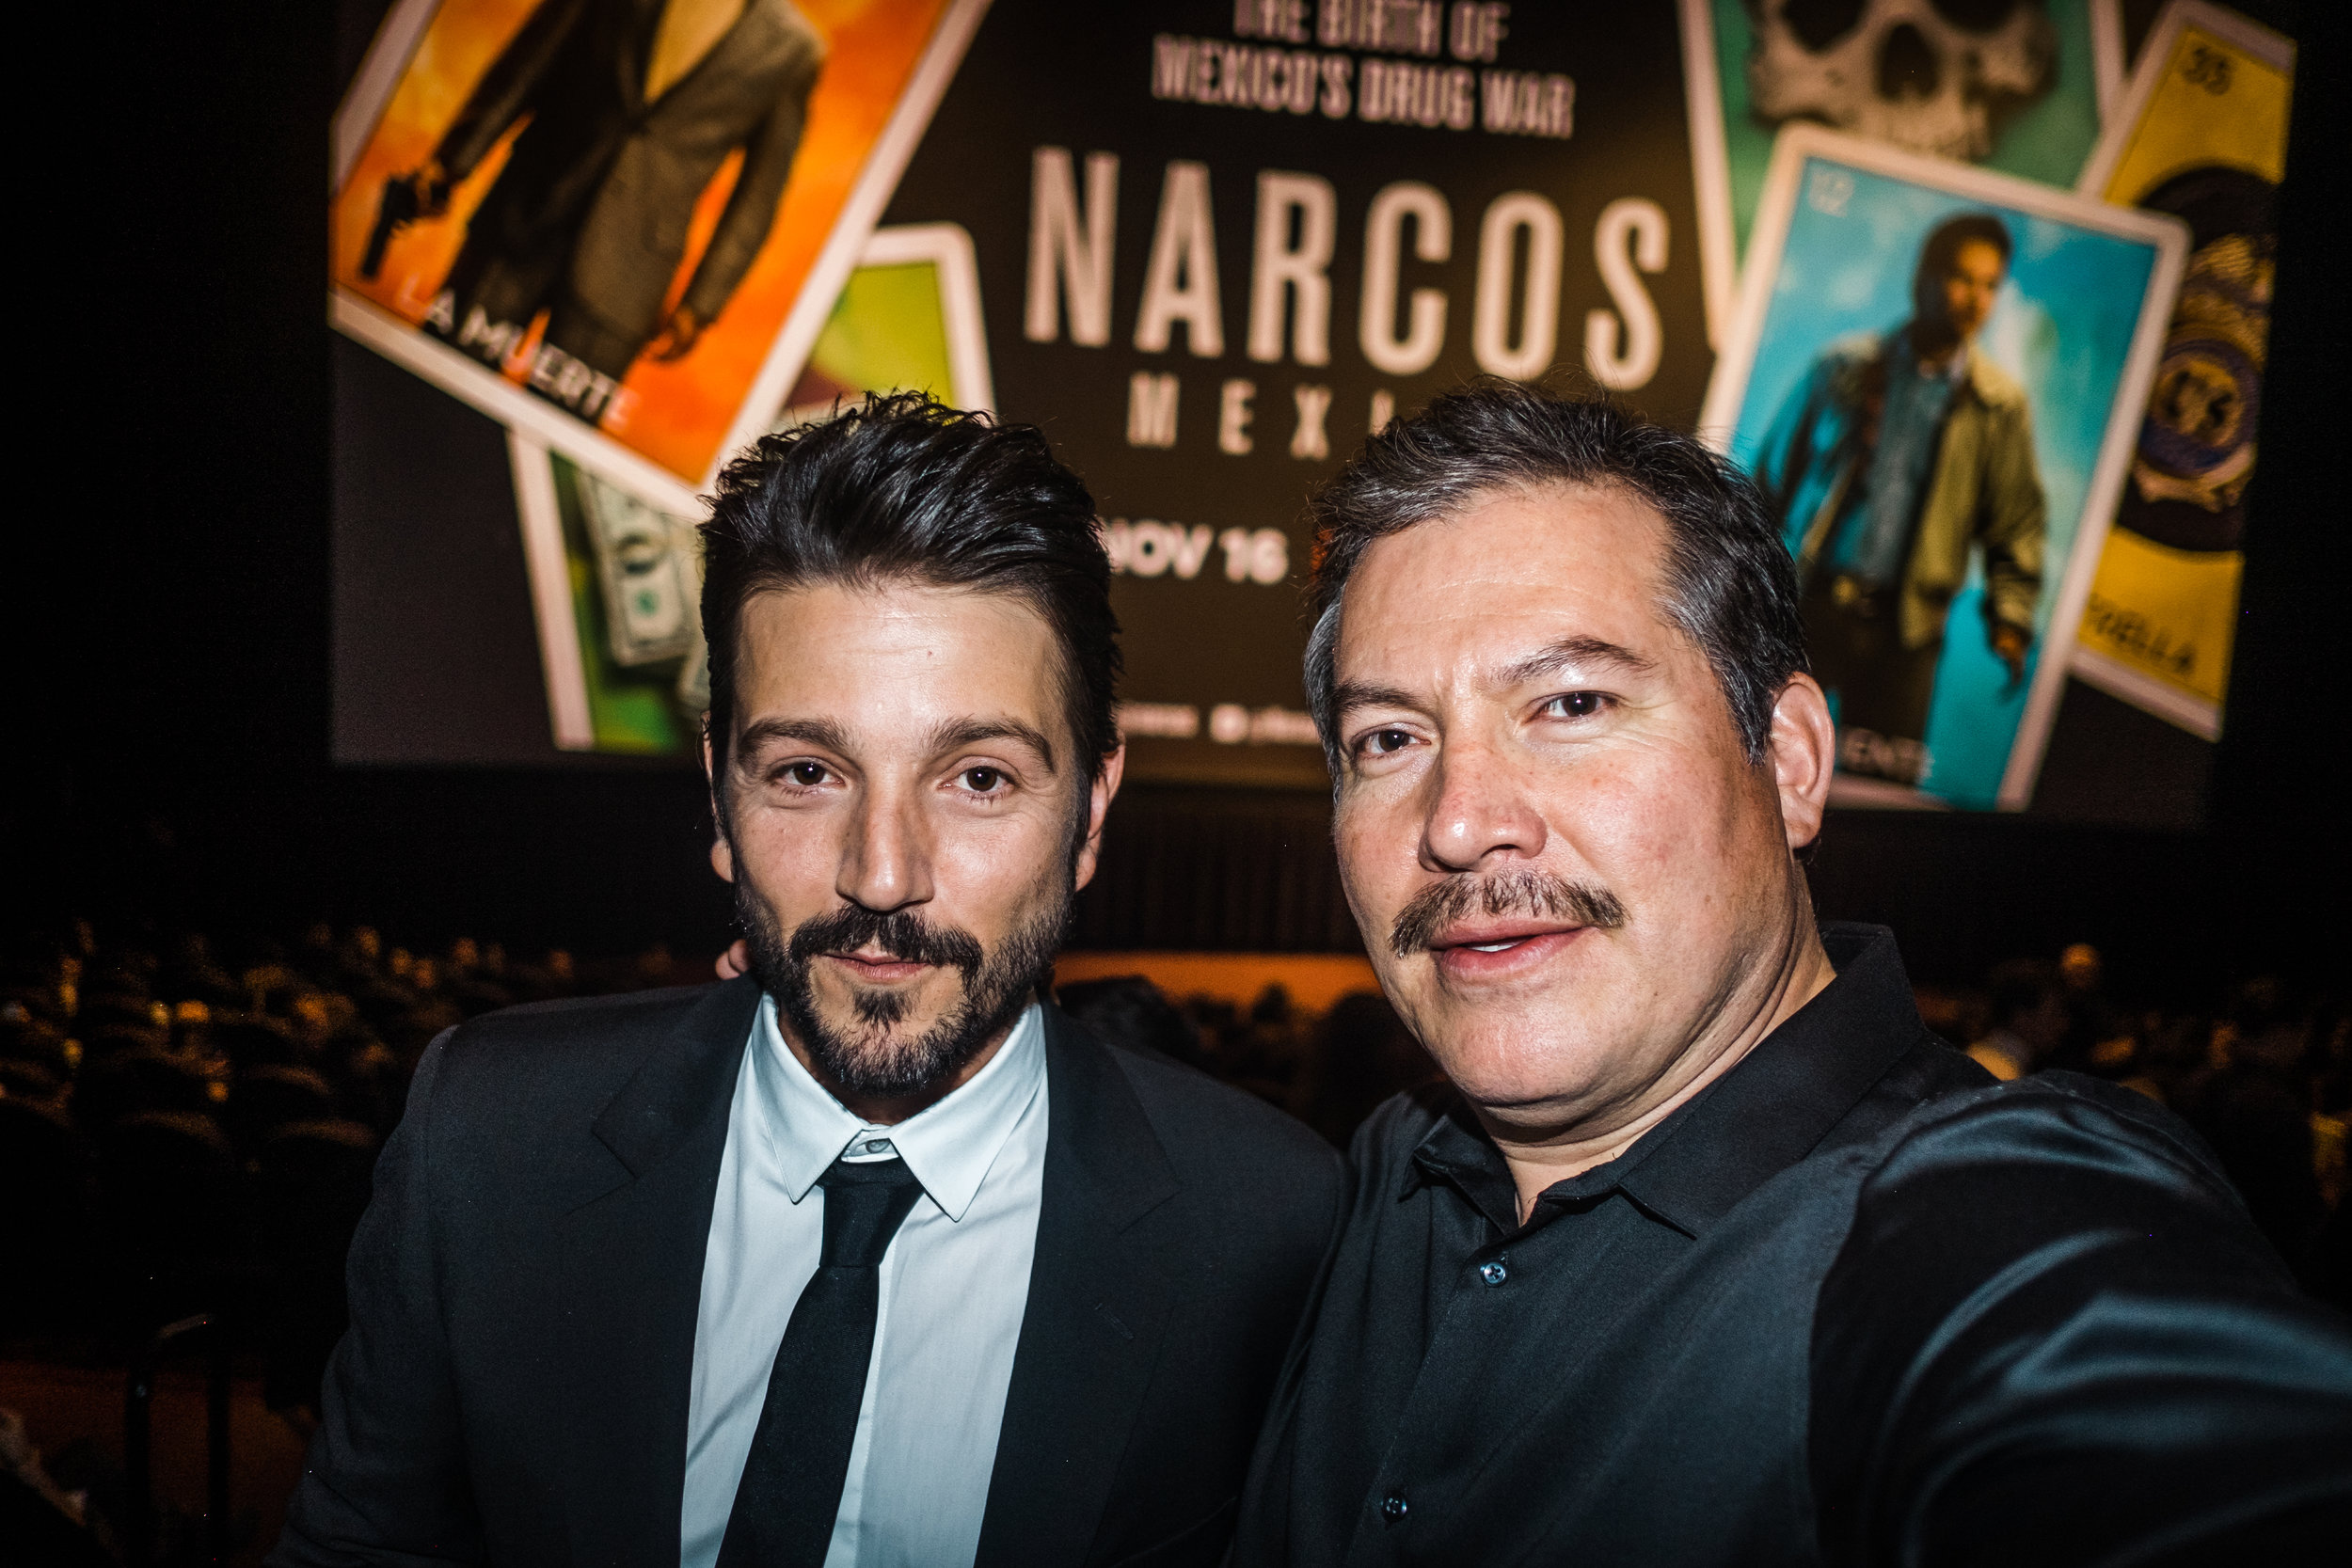 Narcos_after_party-9.jpg